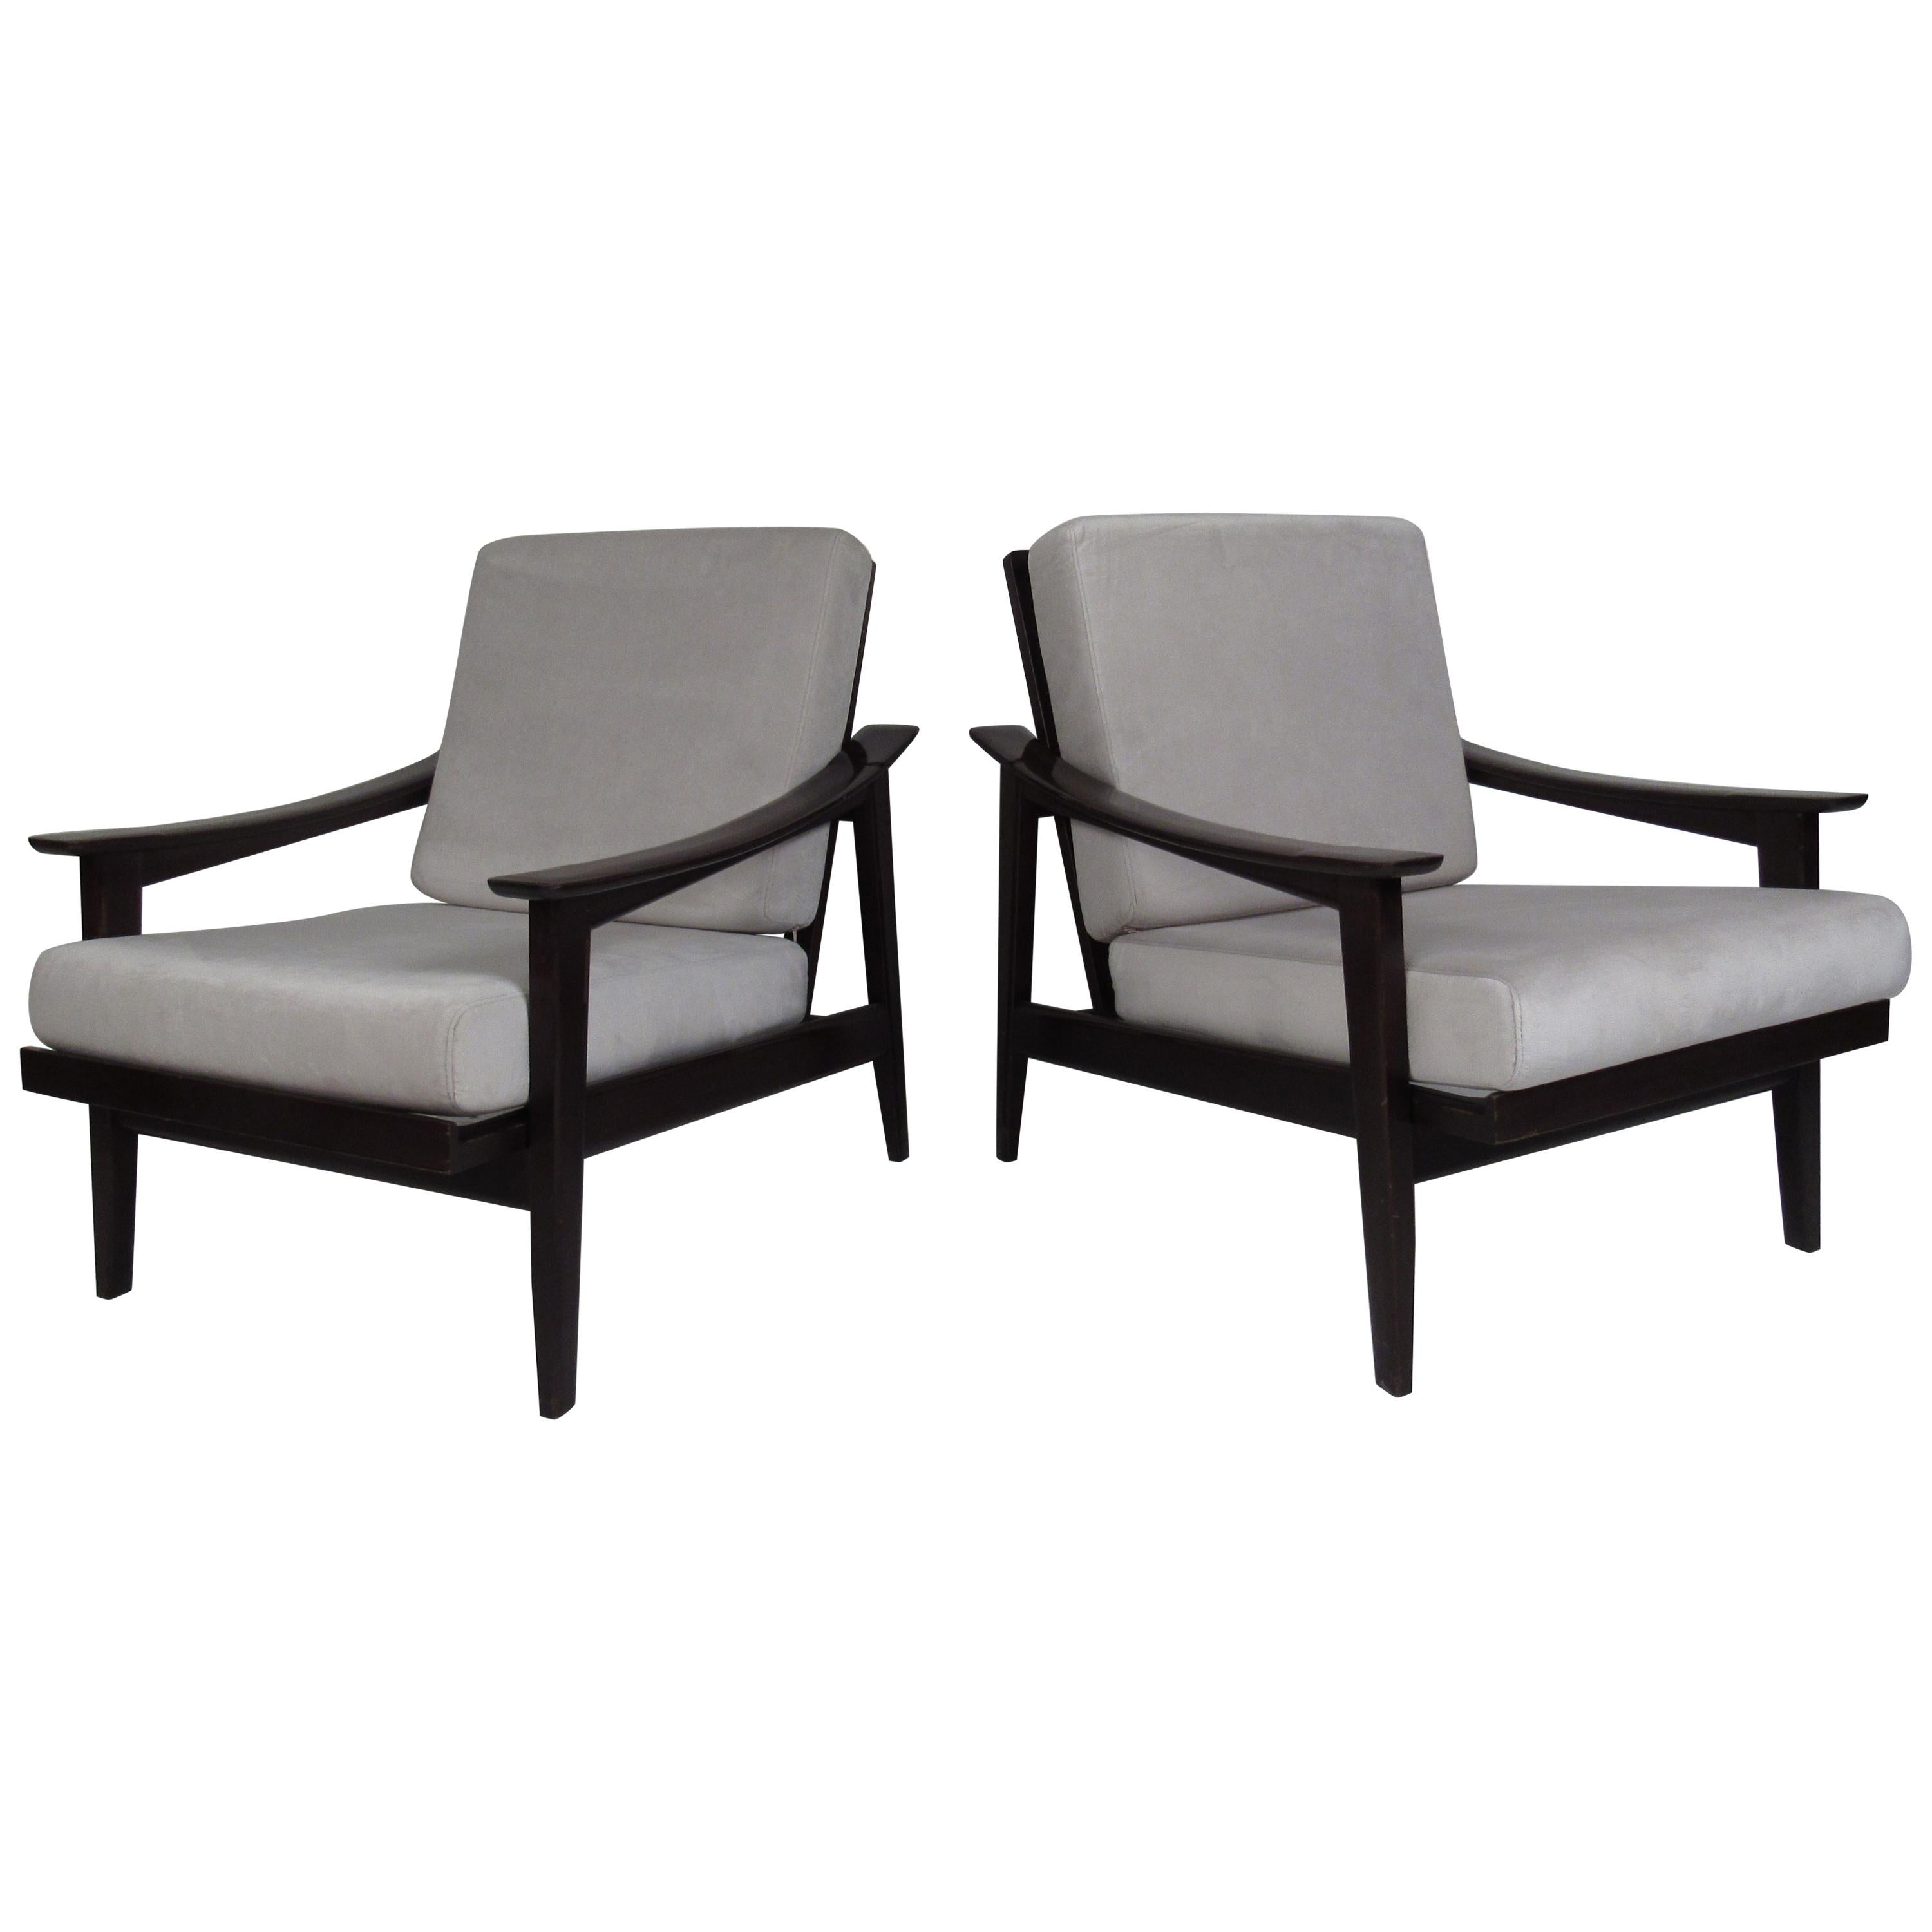 Pair of Vintage Italian Modern Reclining Lounge Chairs